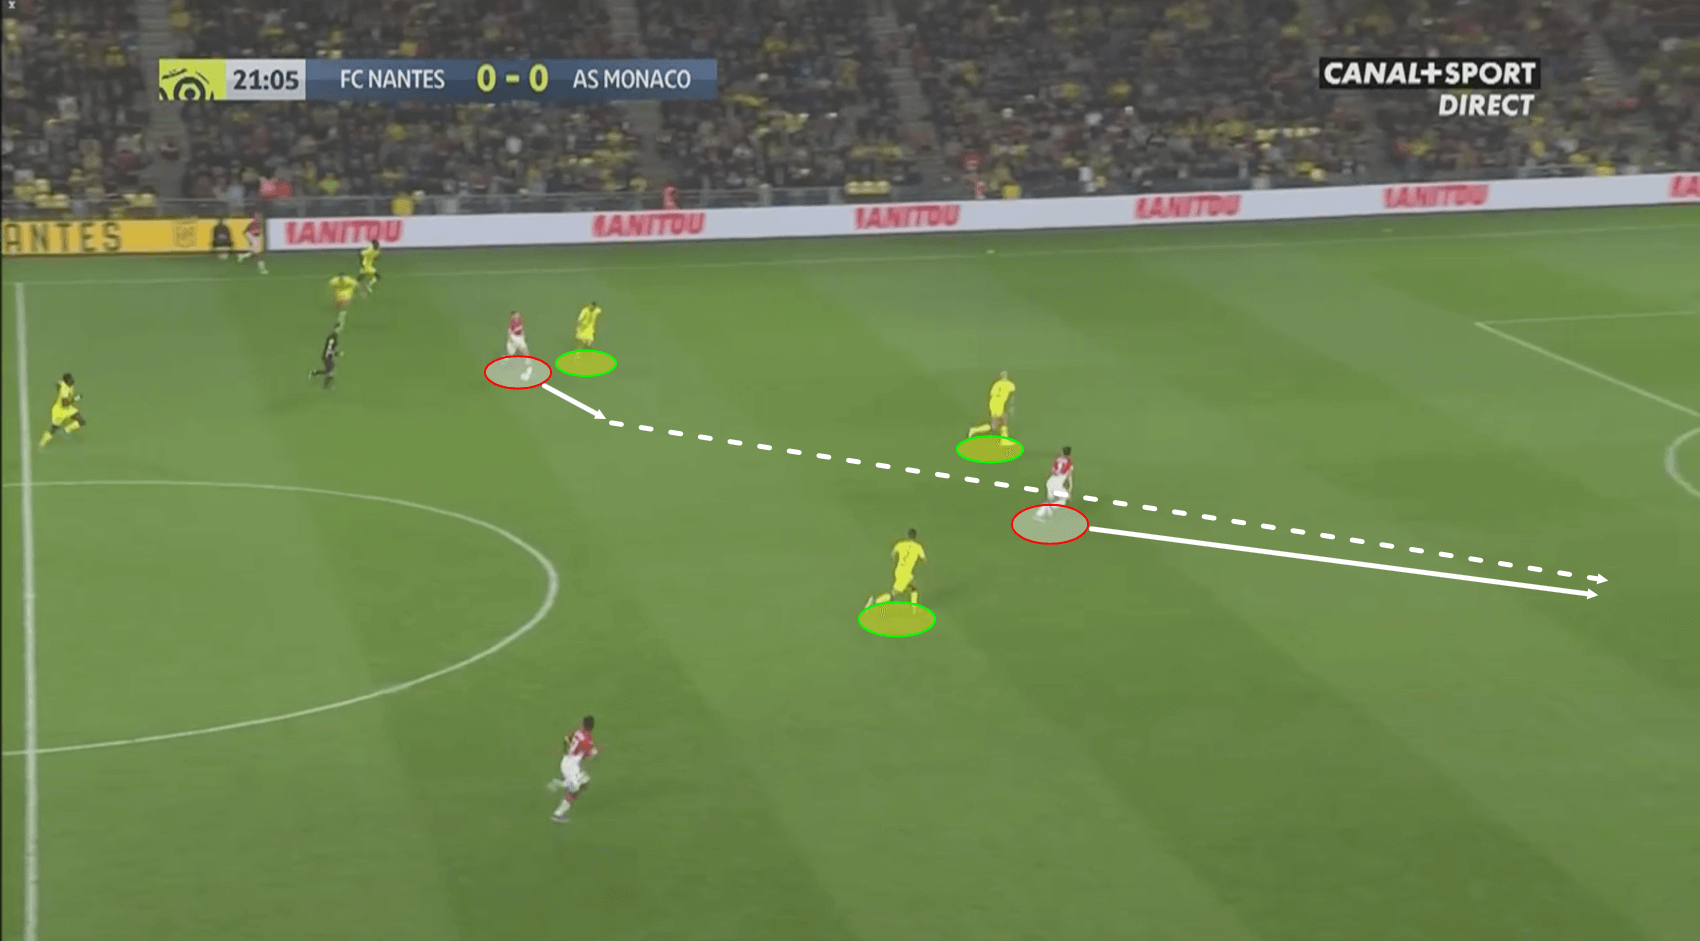 Wissam Ben Yedder and Islam Slimani 2019/20 - Scout Report Tactical Analysis tactics